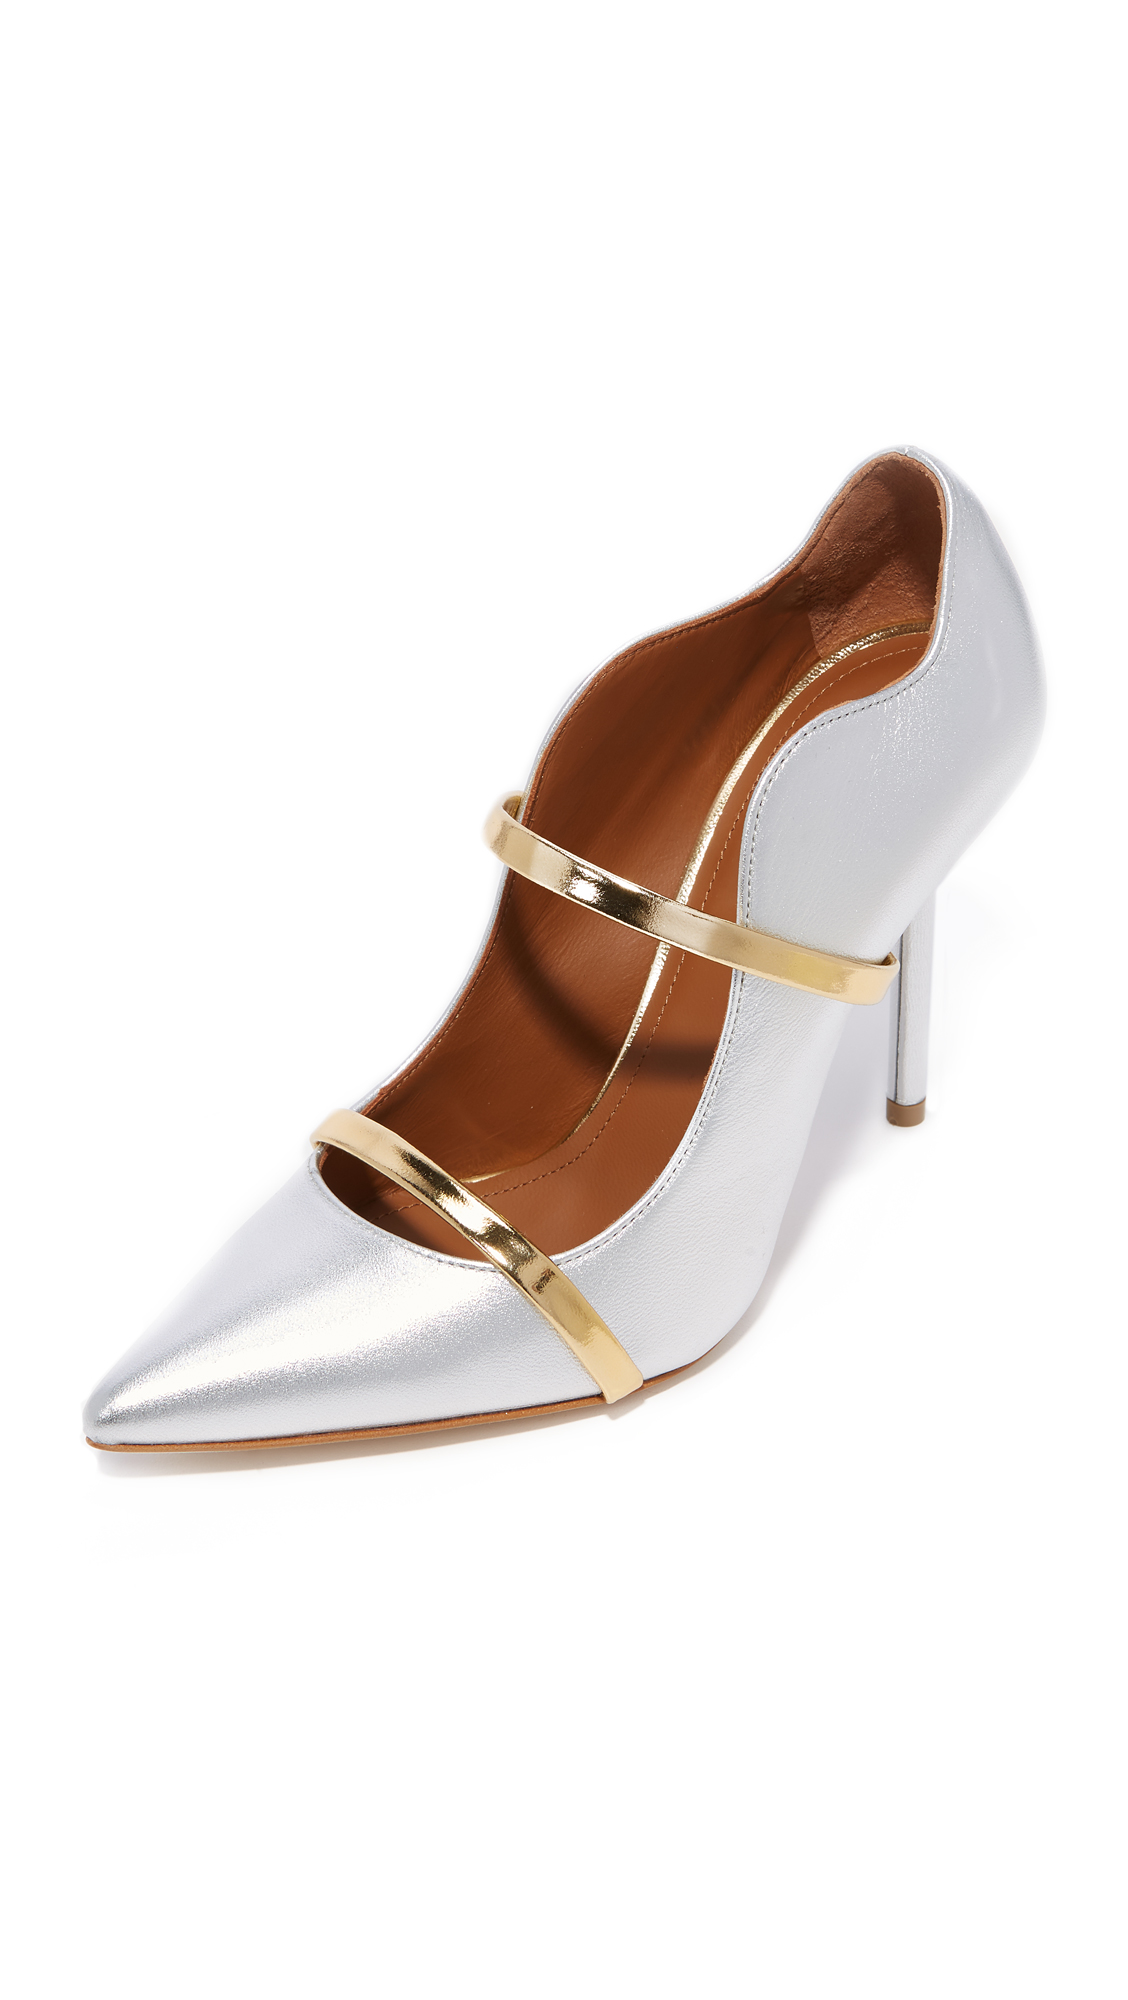 Malone Souliers by Roy Luwolt Maureen Pumps - Silver/Gold